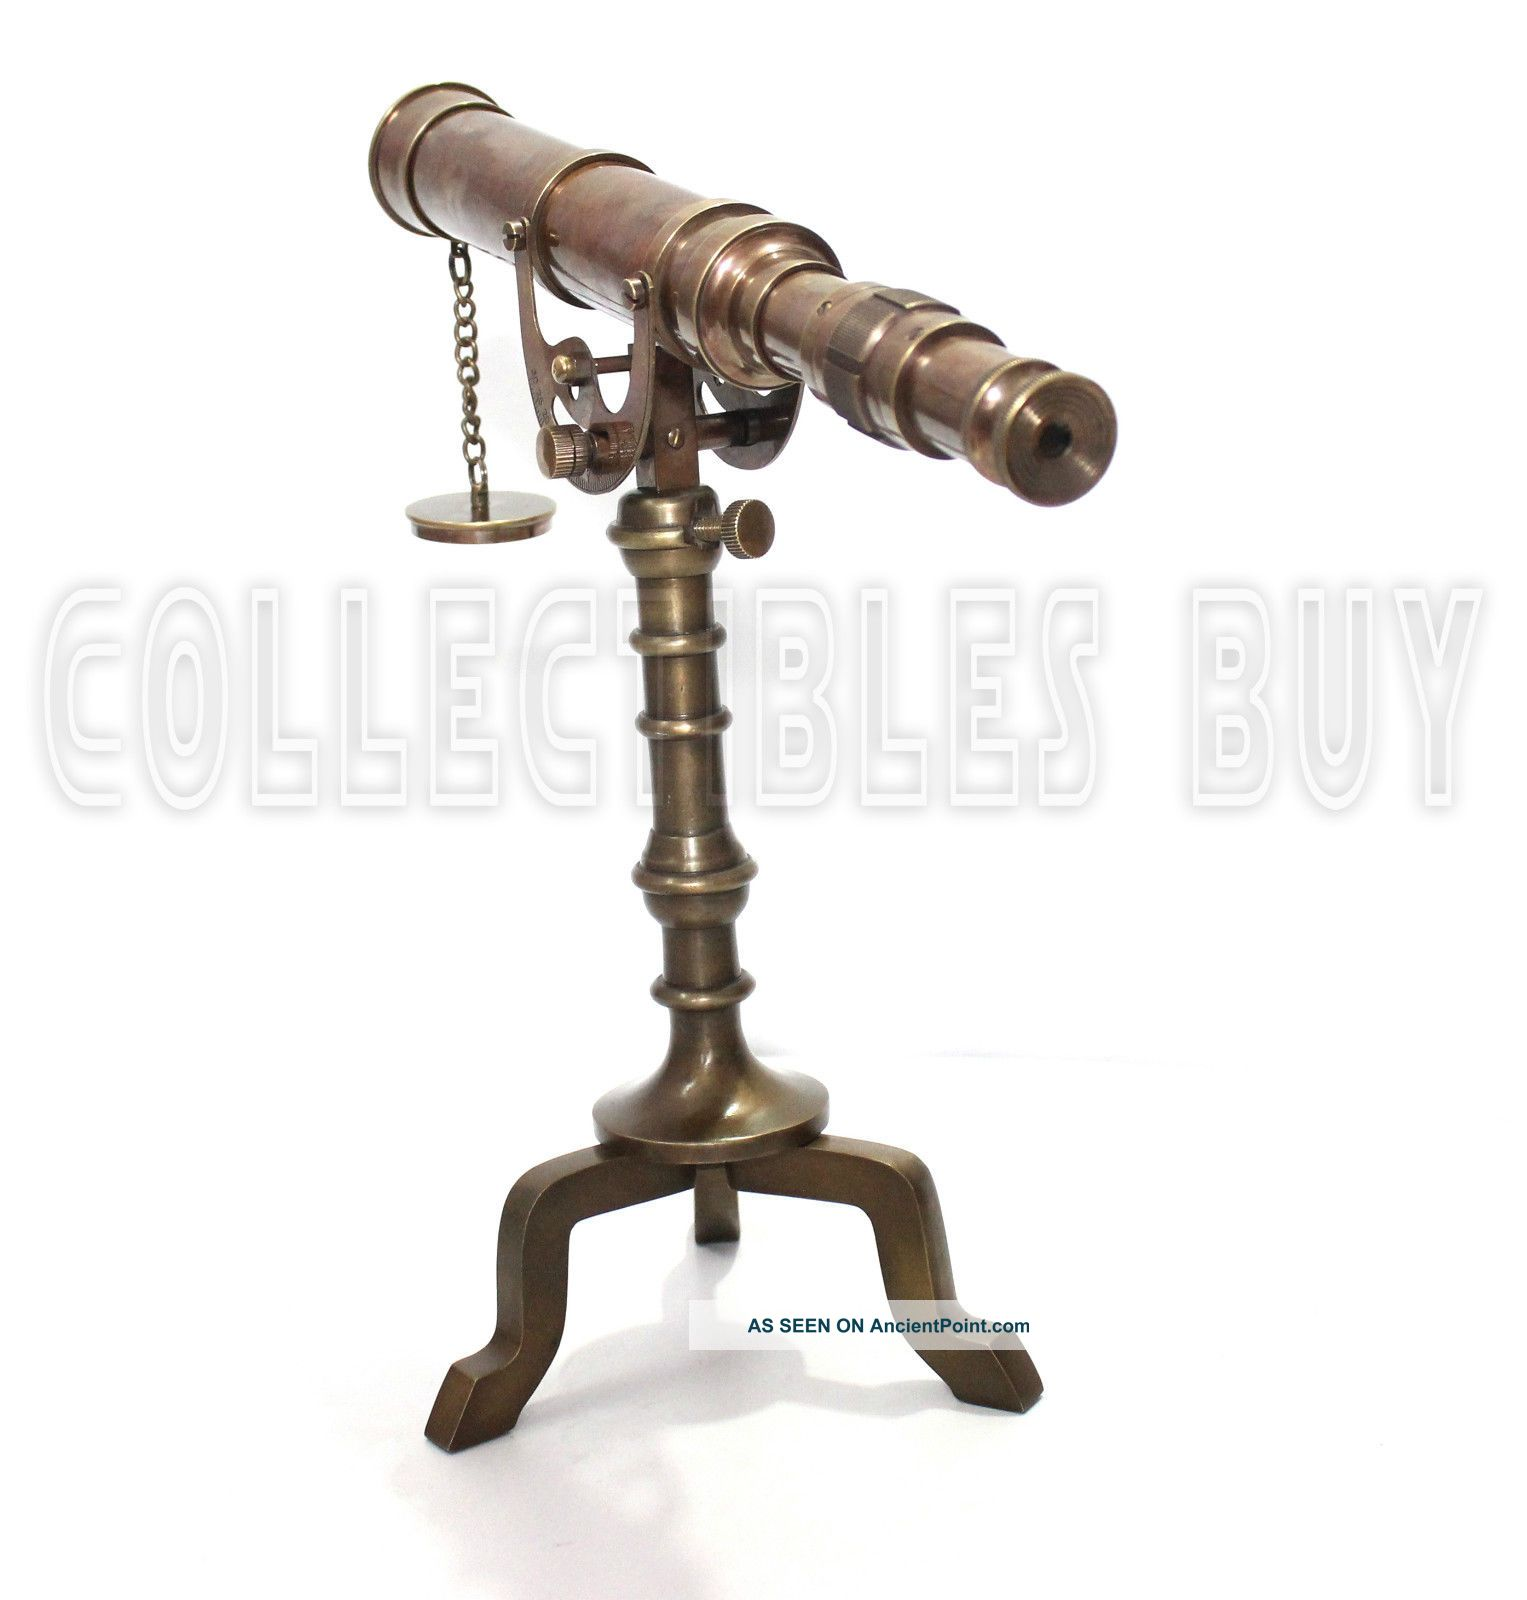 Nautical ‌telescope Vintage Brass Tripod Desk Decorative Nautical Gift ‪item Telescopes photo